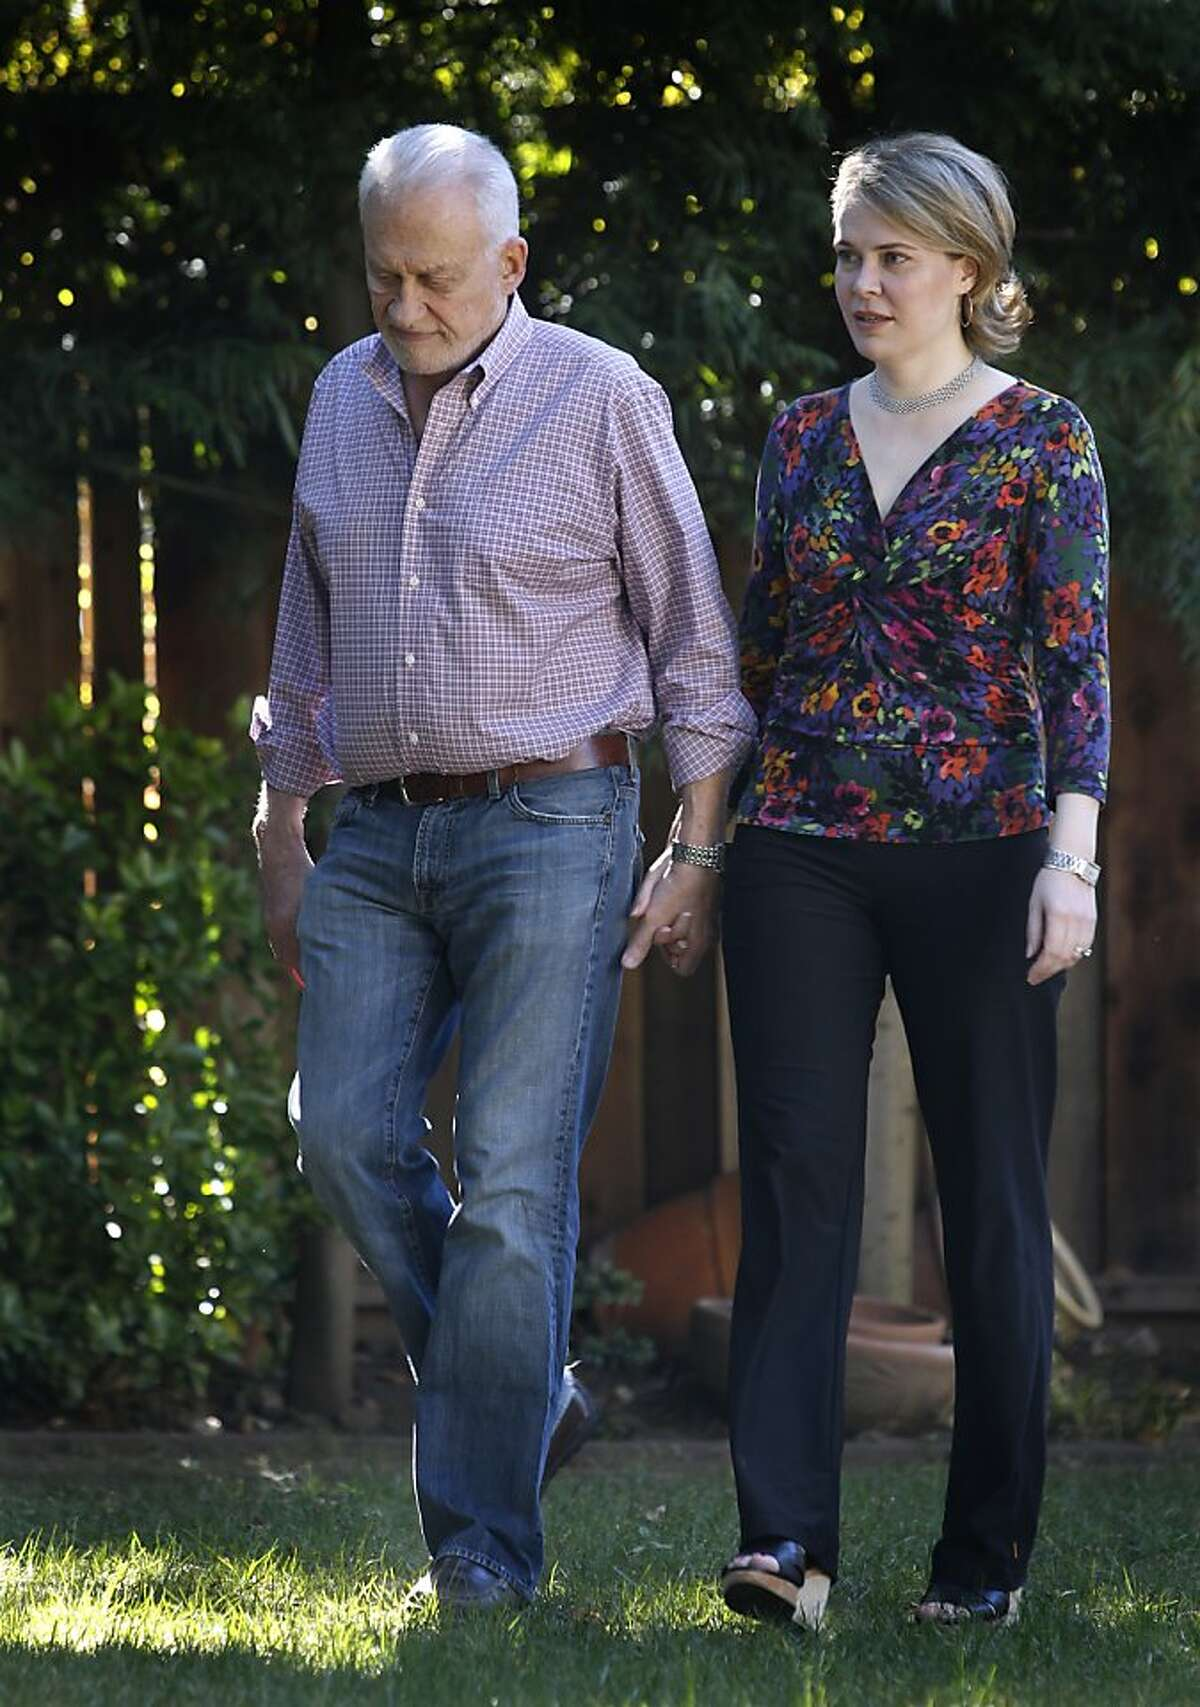 Jeannette Burmeister and her husband Ed take a walk in the backyard of their home in Menlo Park, Calif. on Friday, Feb. 15, 2013. Jeannette Burmeister suffers from a type of chronic fatigue and spends have of the week at Incline Village near Lake Tahoe to receive treatments of an experimental drug that was recently rejected by the FDA.